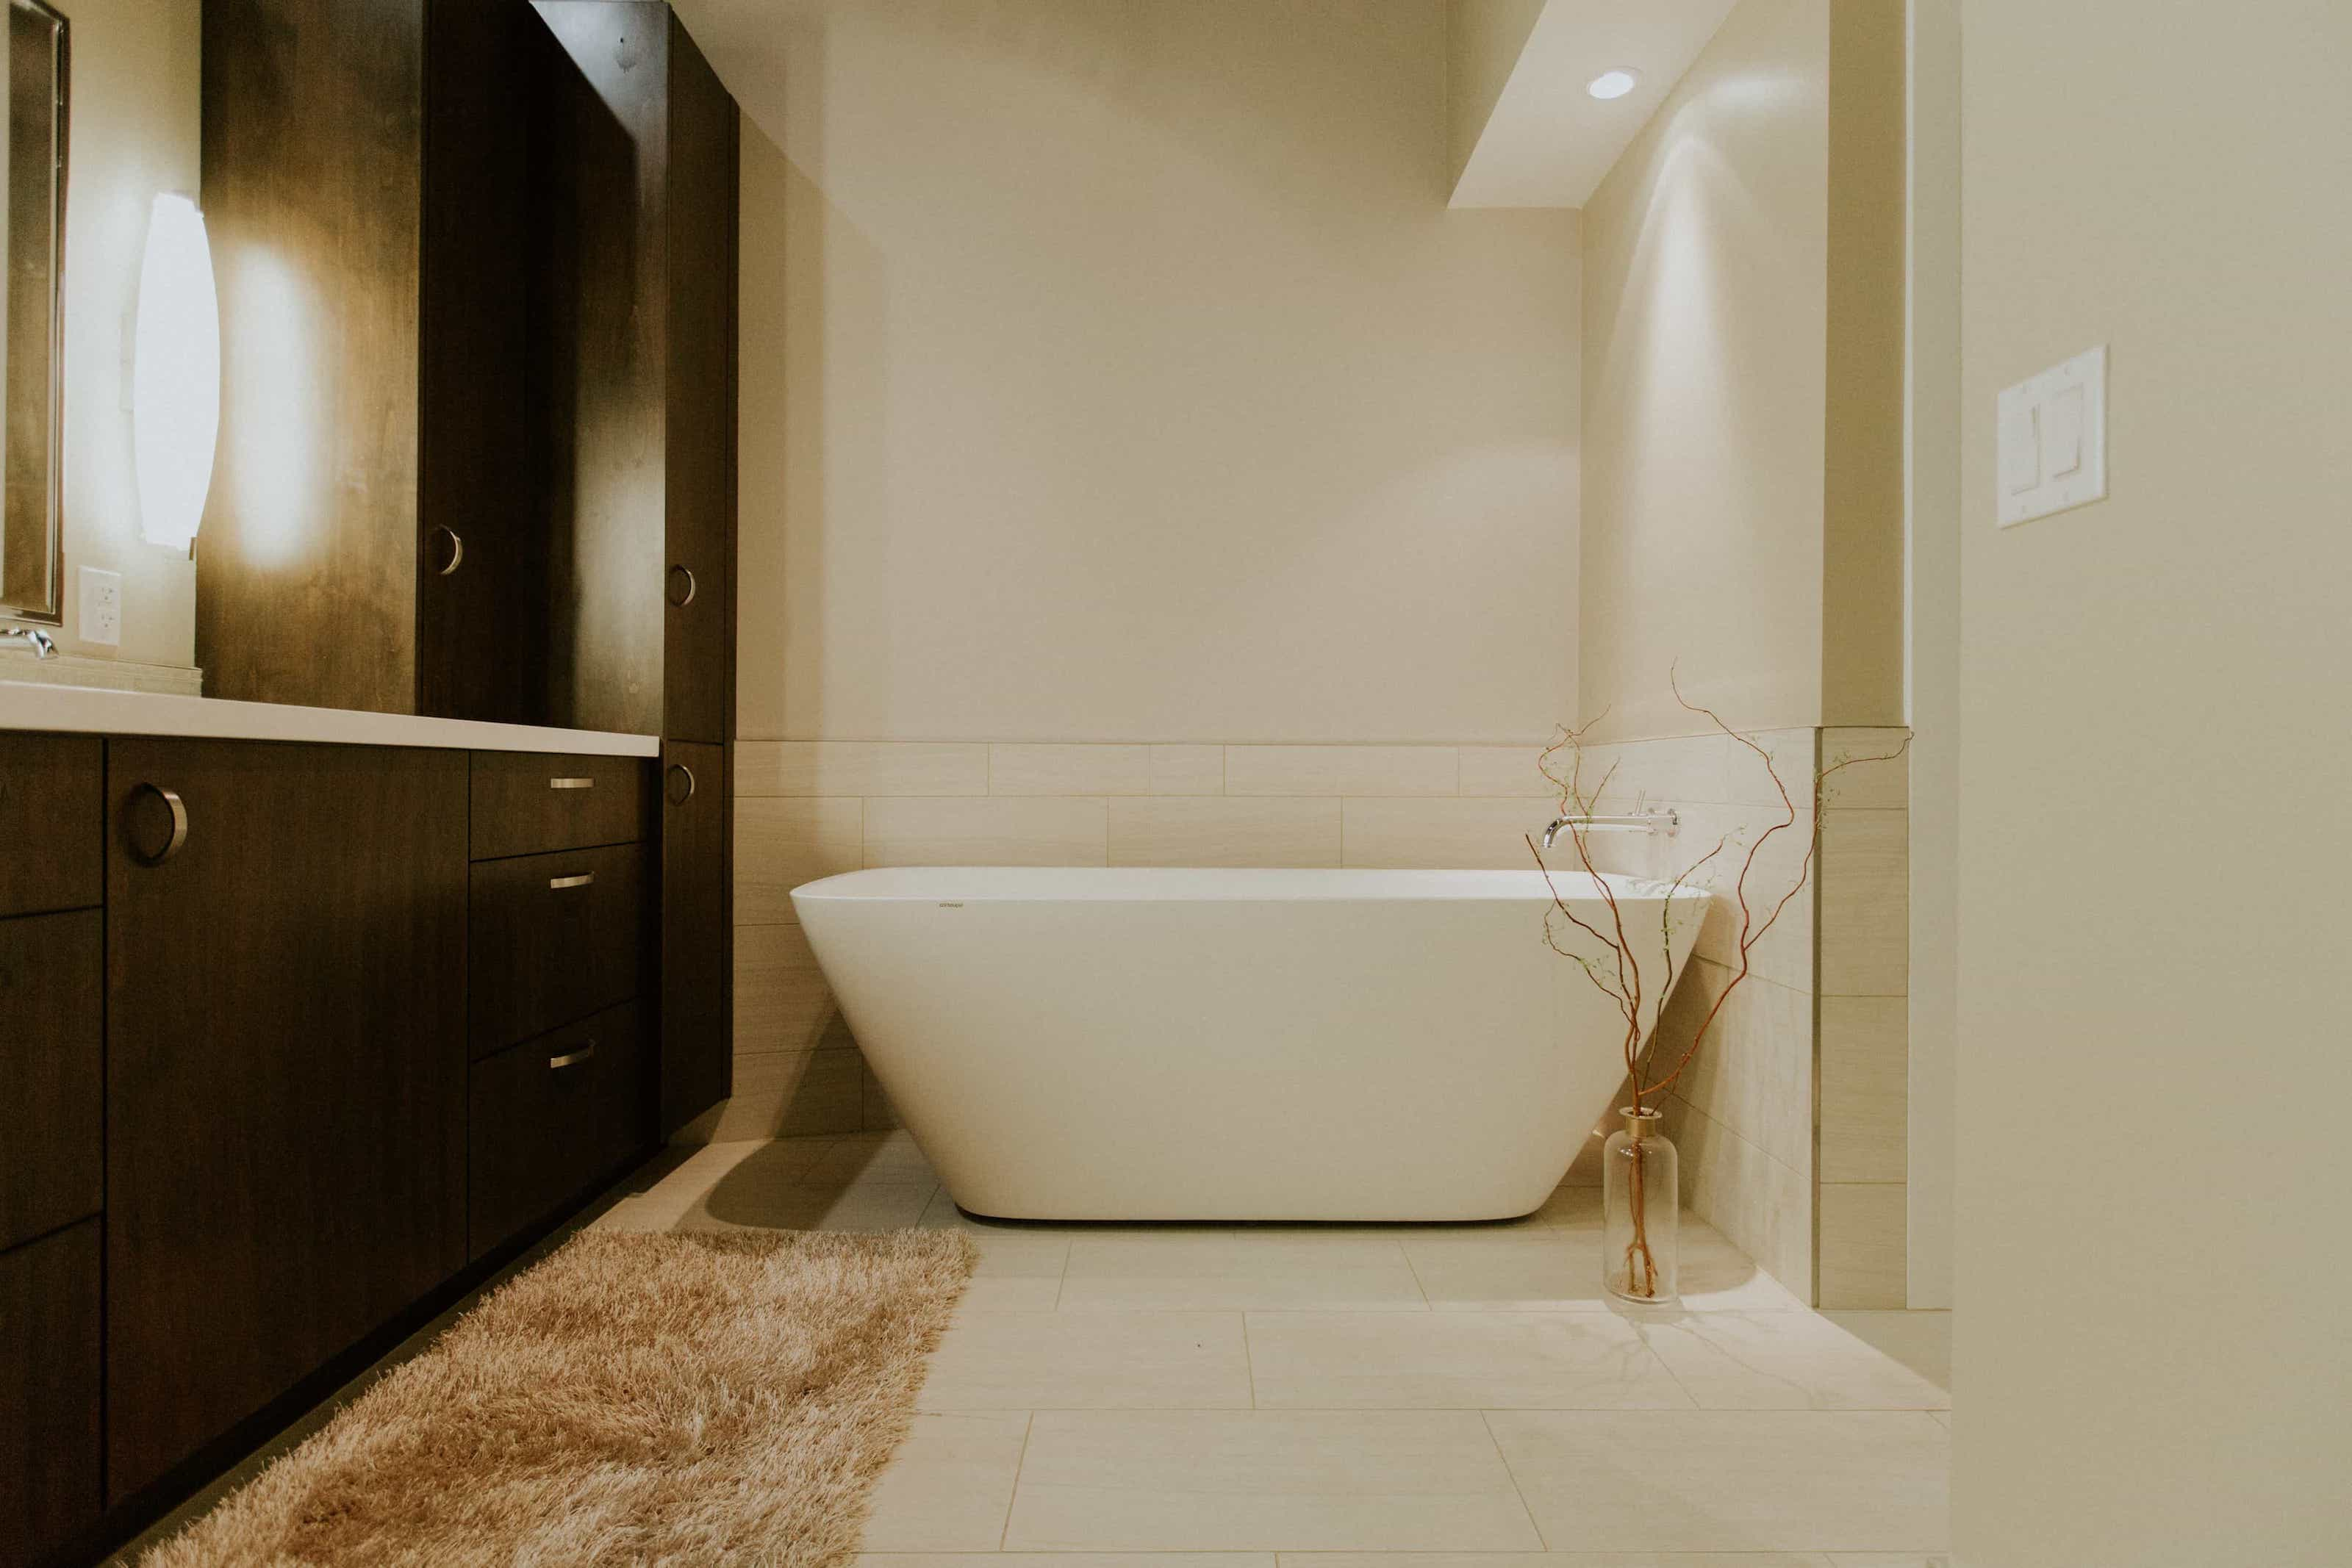 Modern Bathroom With White Bathtub, Large Built In Wood Vanity Cabinetry And Beige Shag Rug (Image 8 of 15)